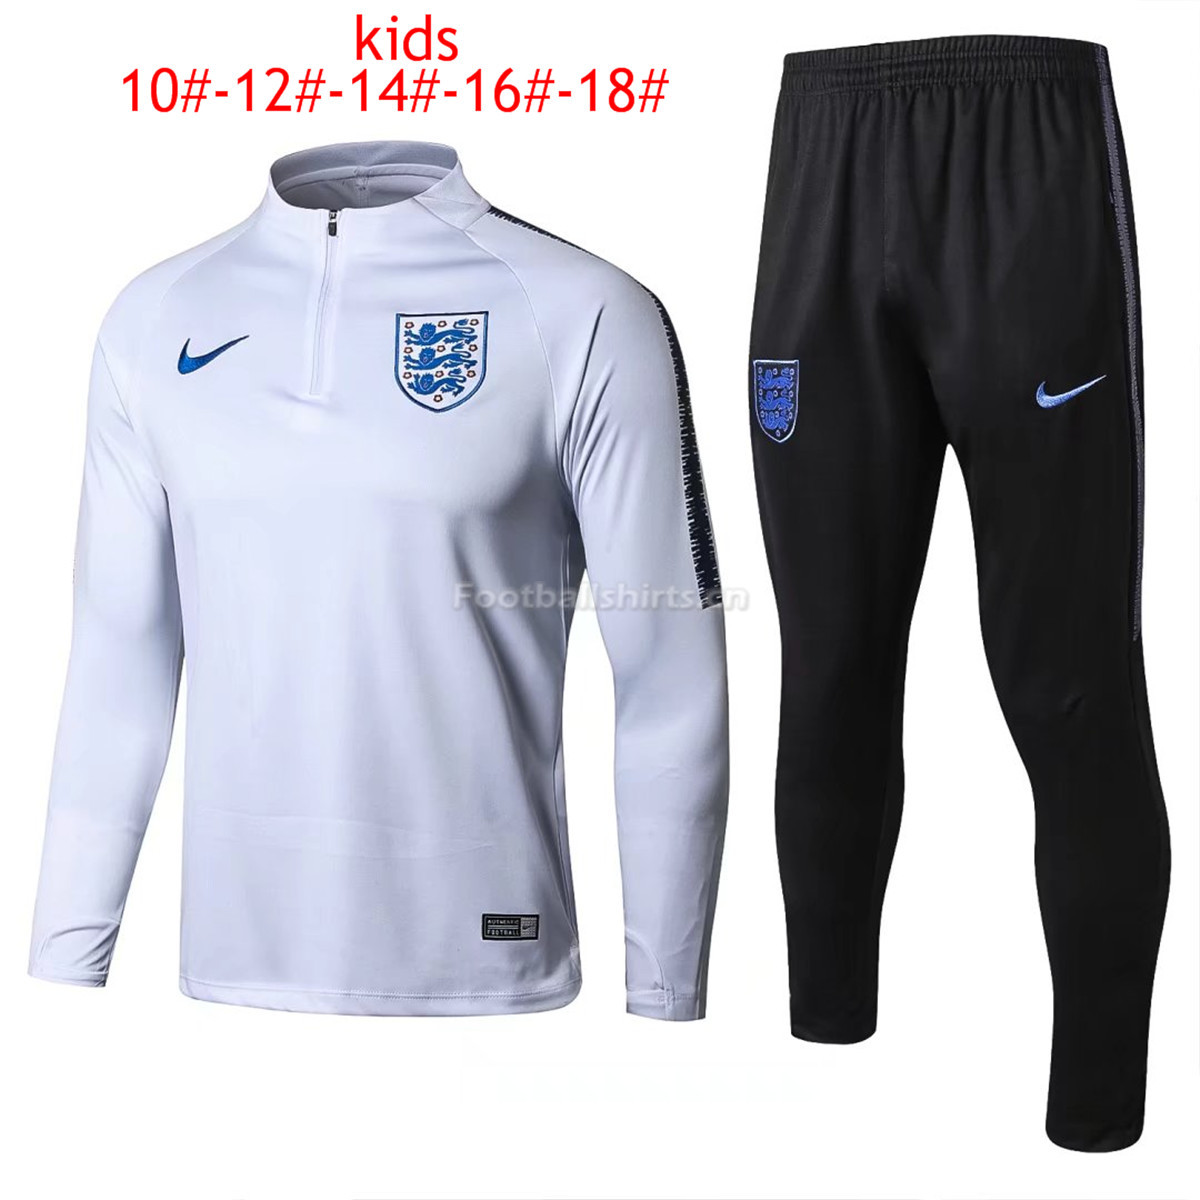 Kids England FIFA World Cup 2018 Training Suit Zipper White